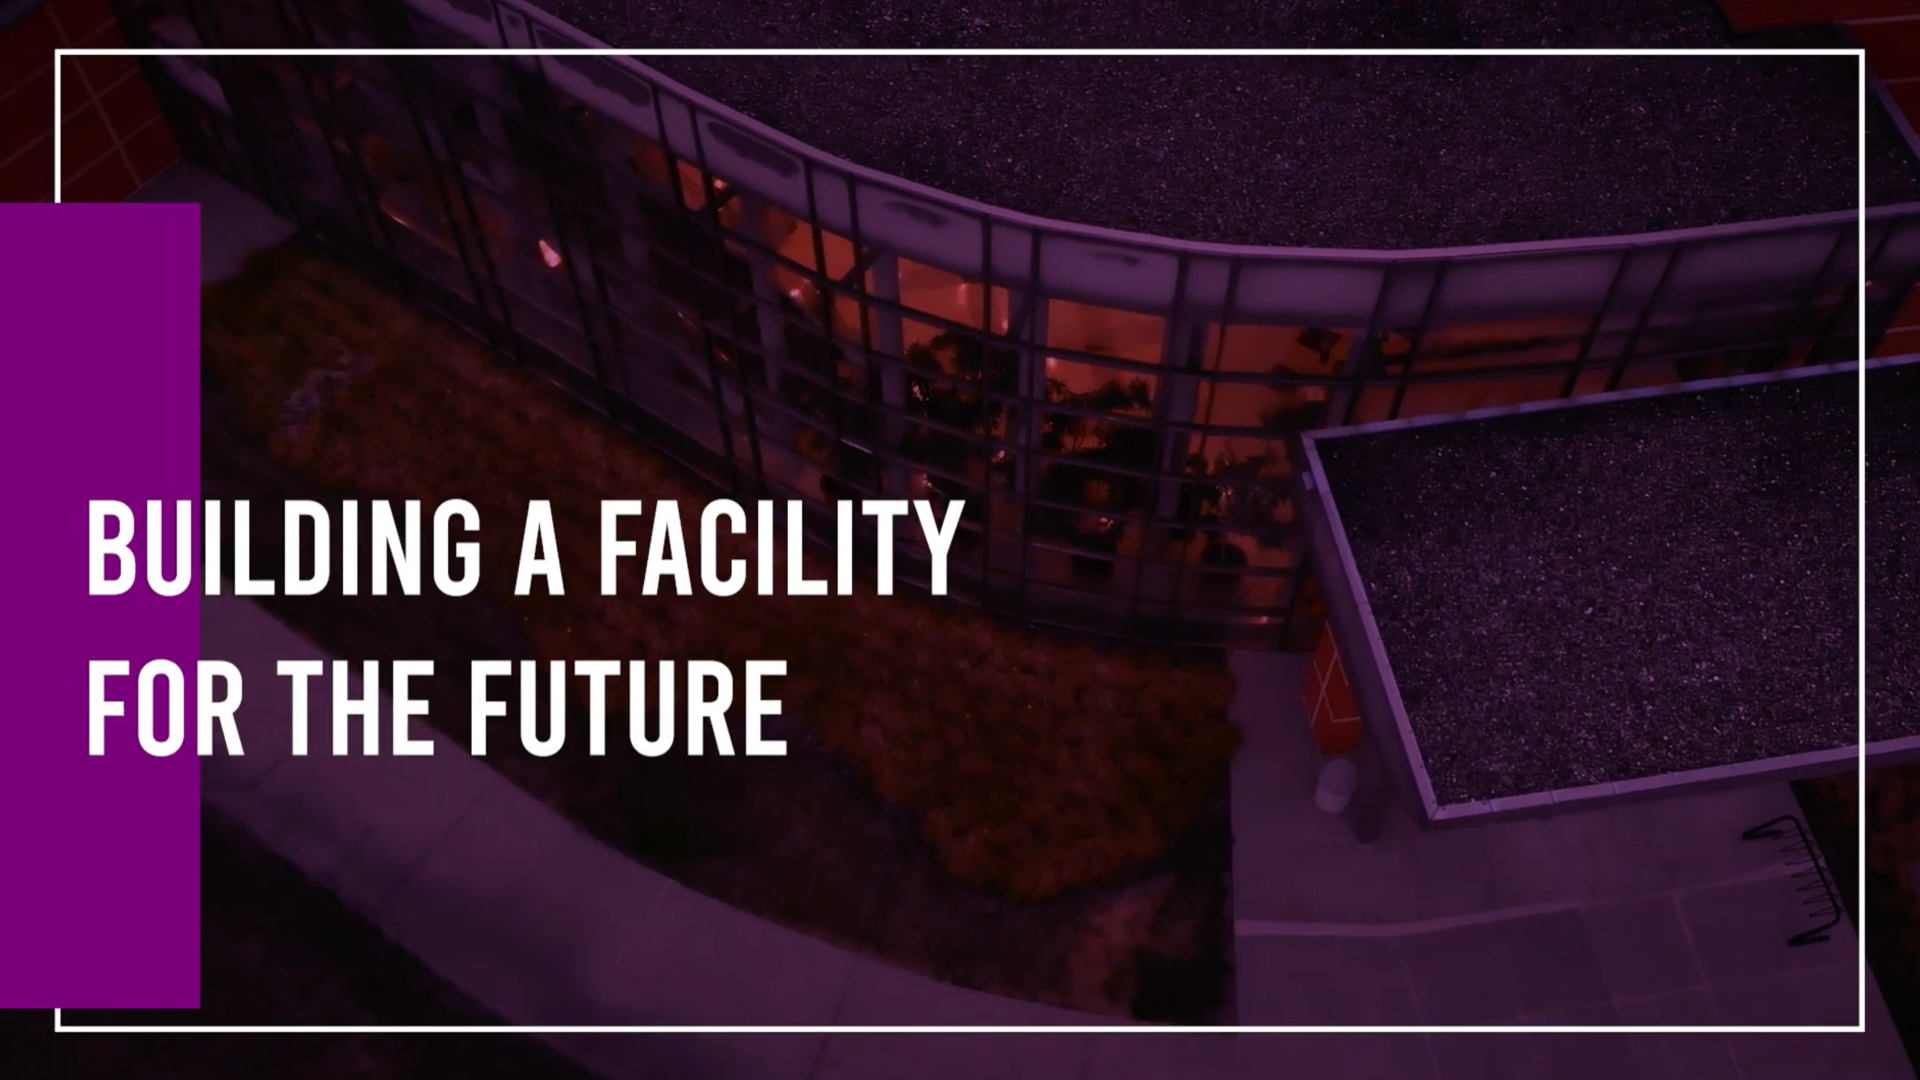 Building a facility for the future